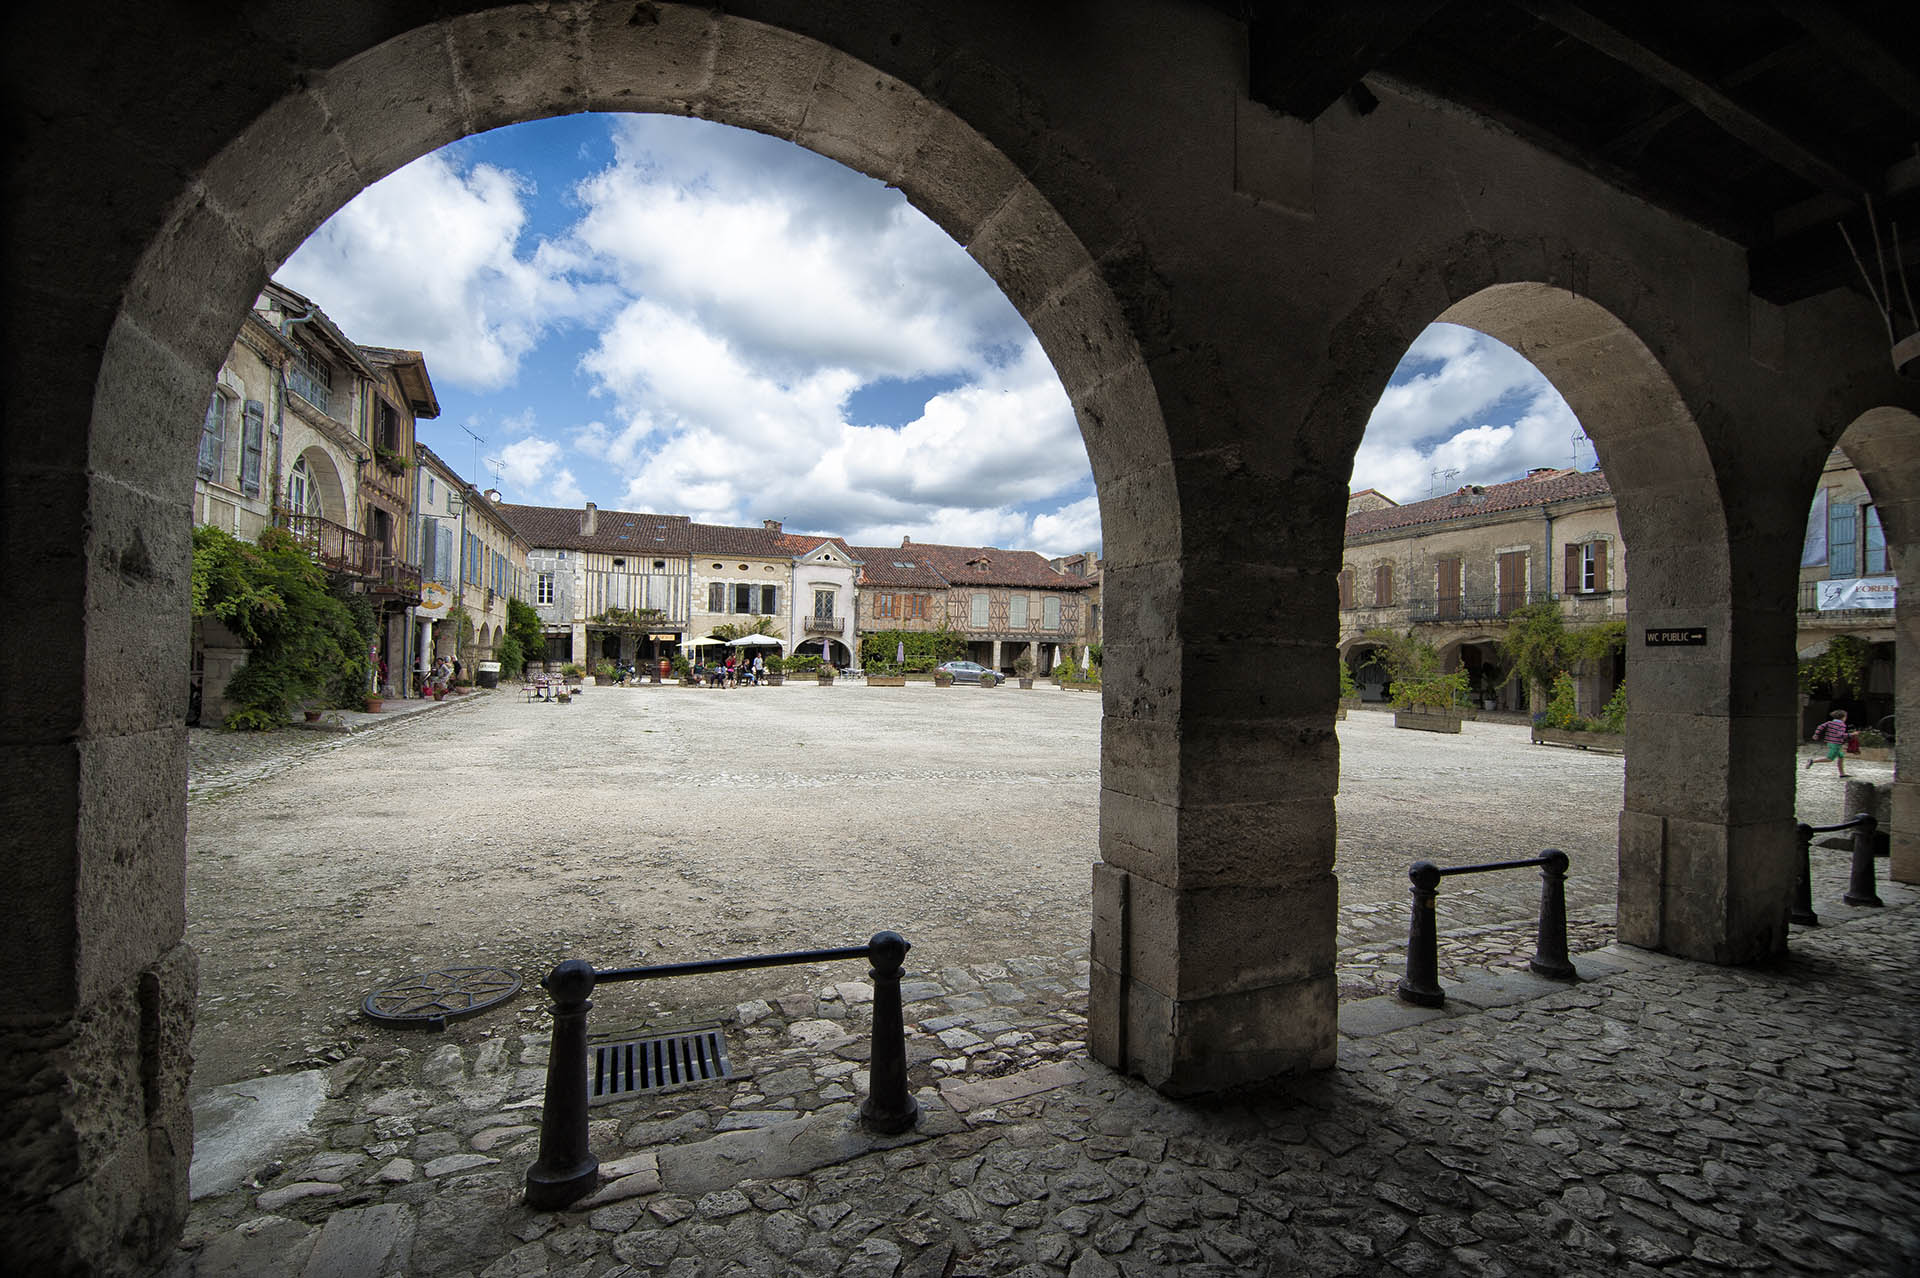 Village of Labastide-d'Armagnac, Gascony / Getty